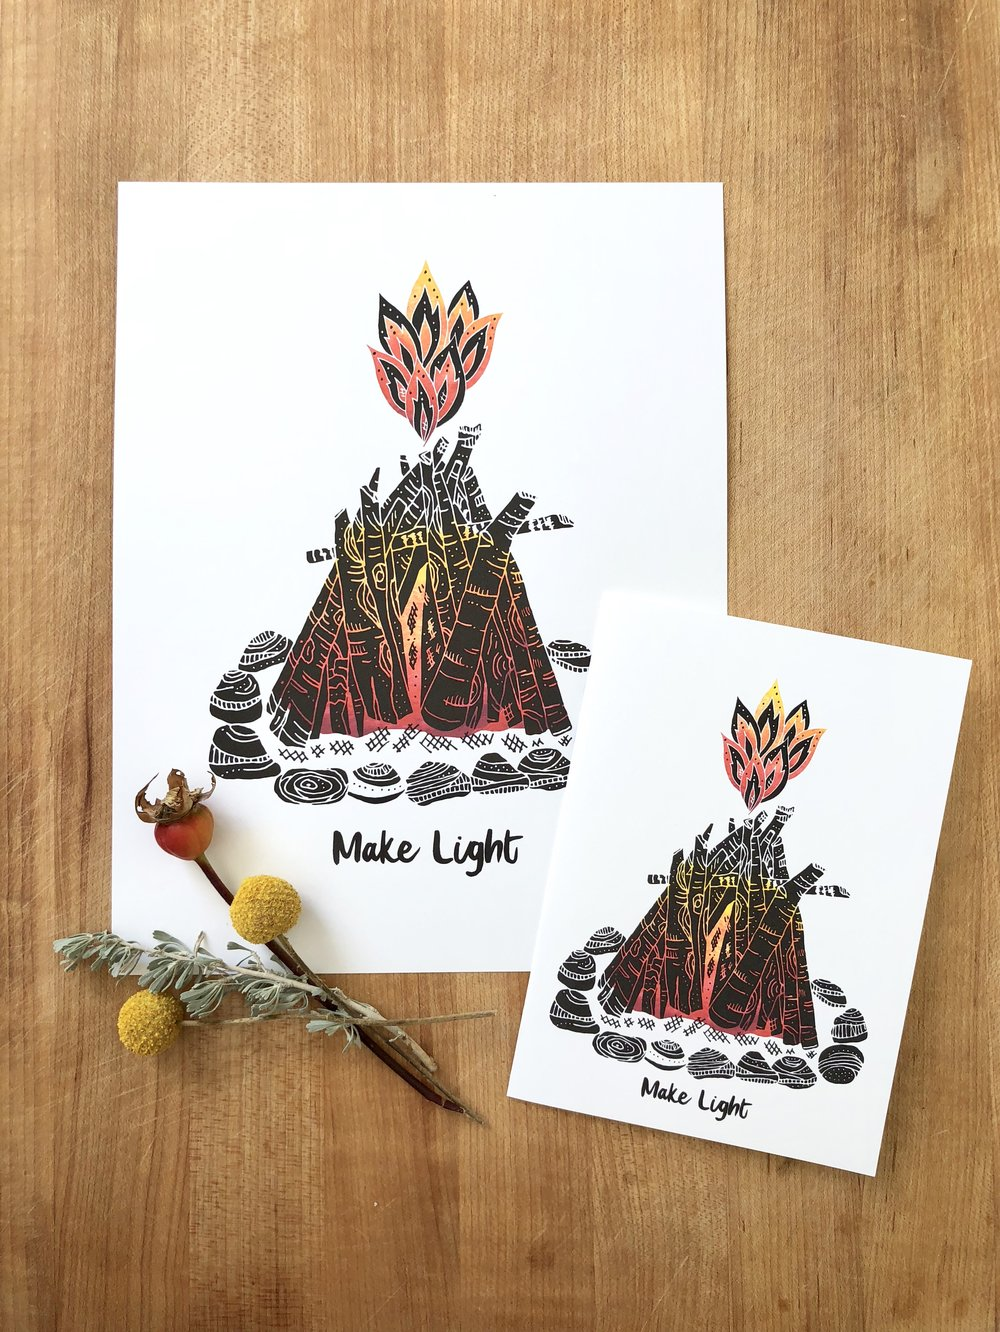 Make Light - Even in our darkest moments, we have the ability to Make Light. A single spark can grow and flourish into a glowing, warming flame. Make Light is a new winter offering. It is an invitation to cultivate hope, to allow that flicker of possibility to swell and radiate as generous warmth and light. Available as 5 X 7 cards and 8.5 X 11 archival prints.